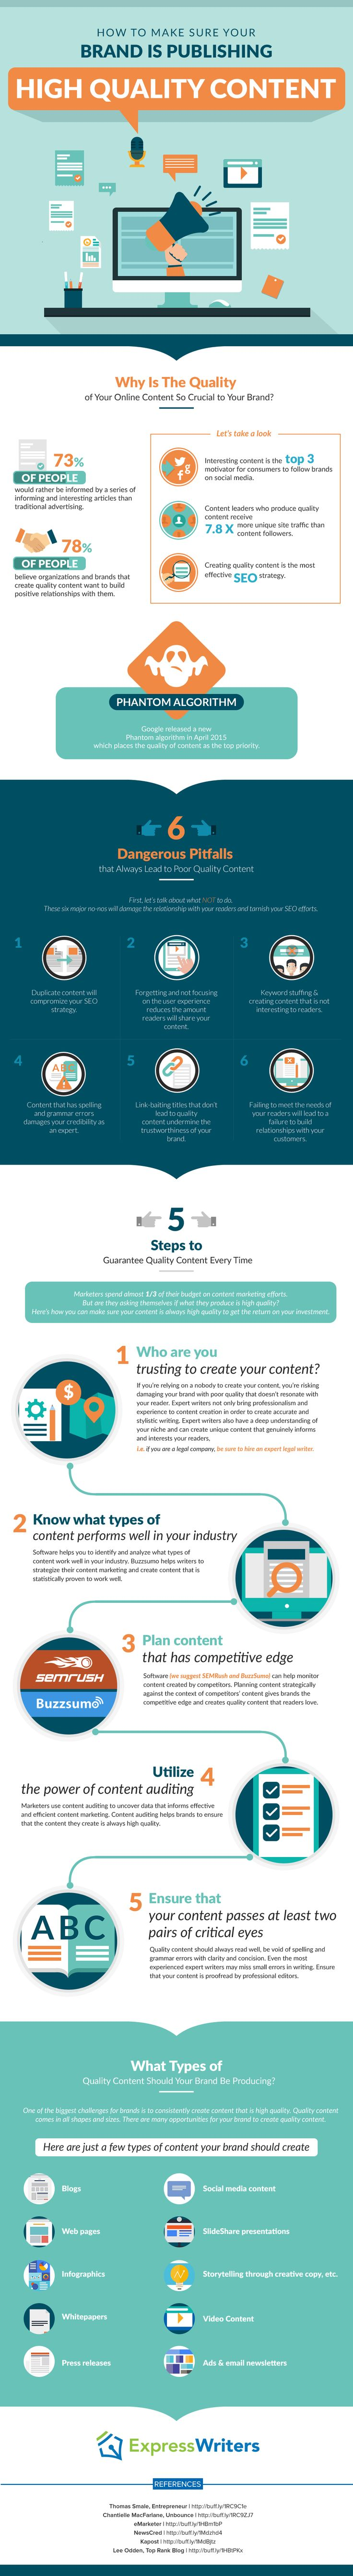 5 steps to  make sure you're always publishing high quality content to get the return on your investment - #infographic